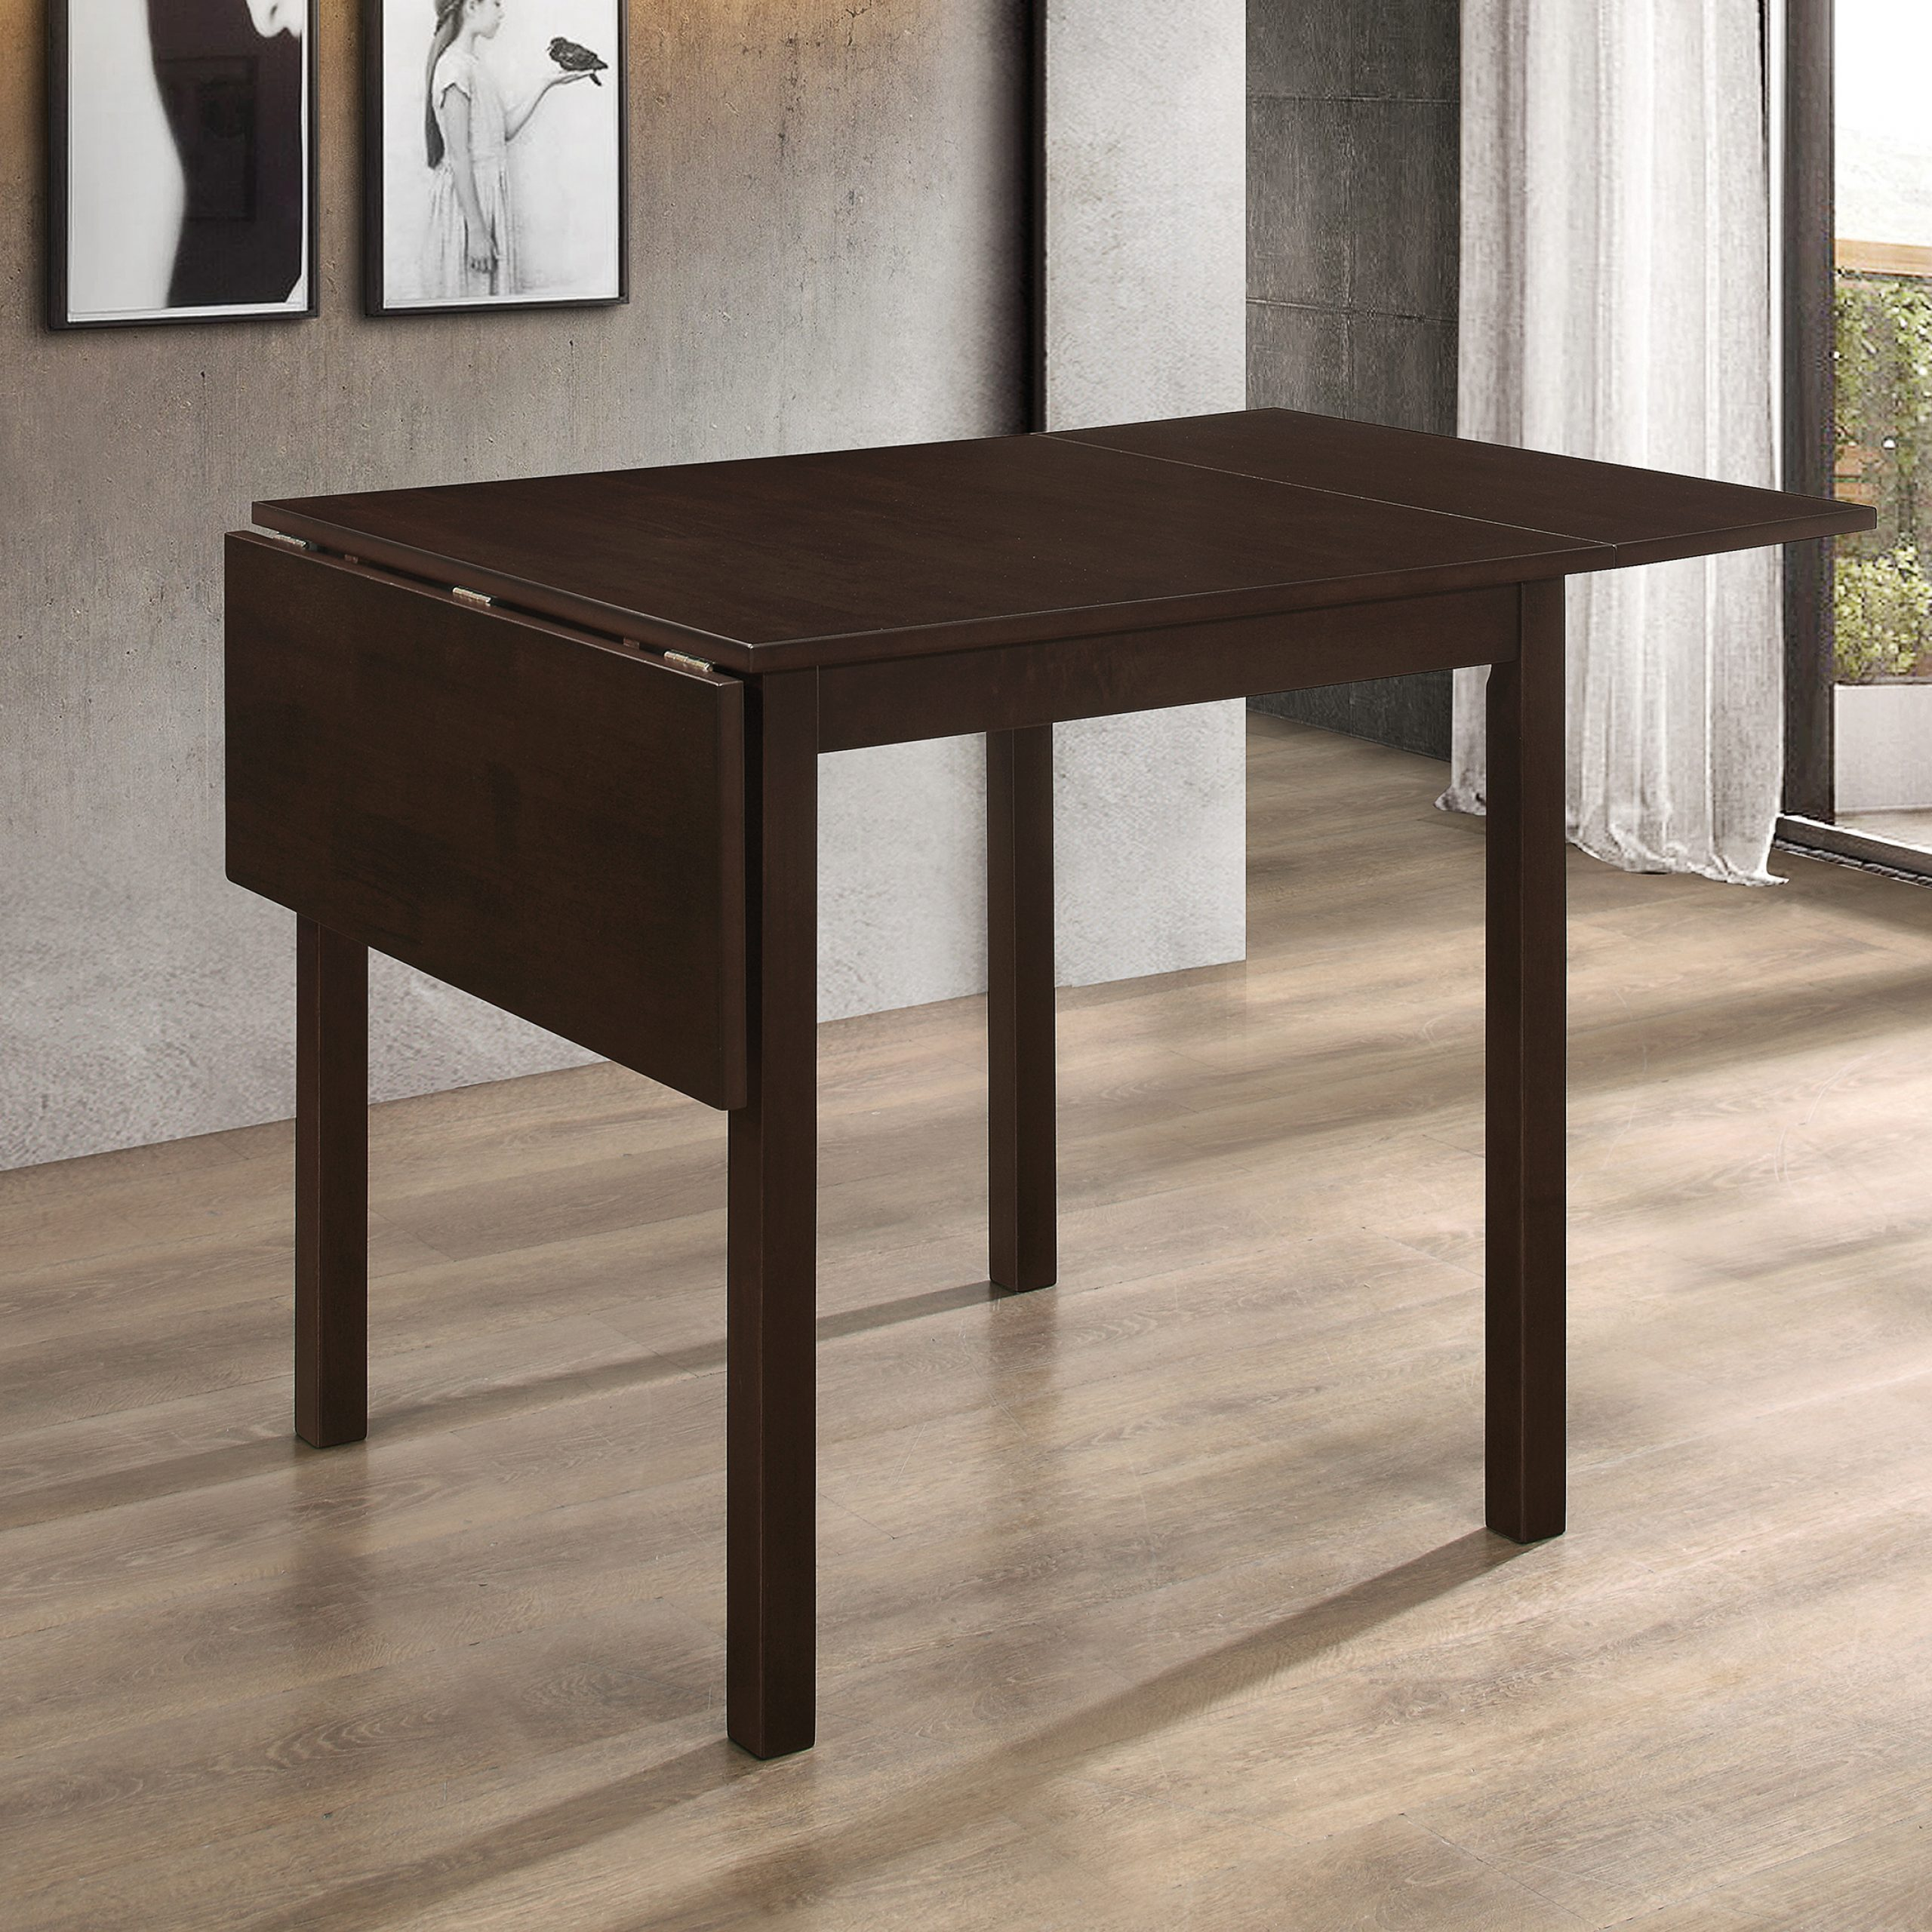 Kelso Rectangular Dining Table With Drop Leaf Cappuccino For Best And Newest Transitional 3 Piece Drop Leaf Casual Dining Tables Set (View 9 of 25)